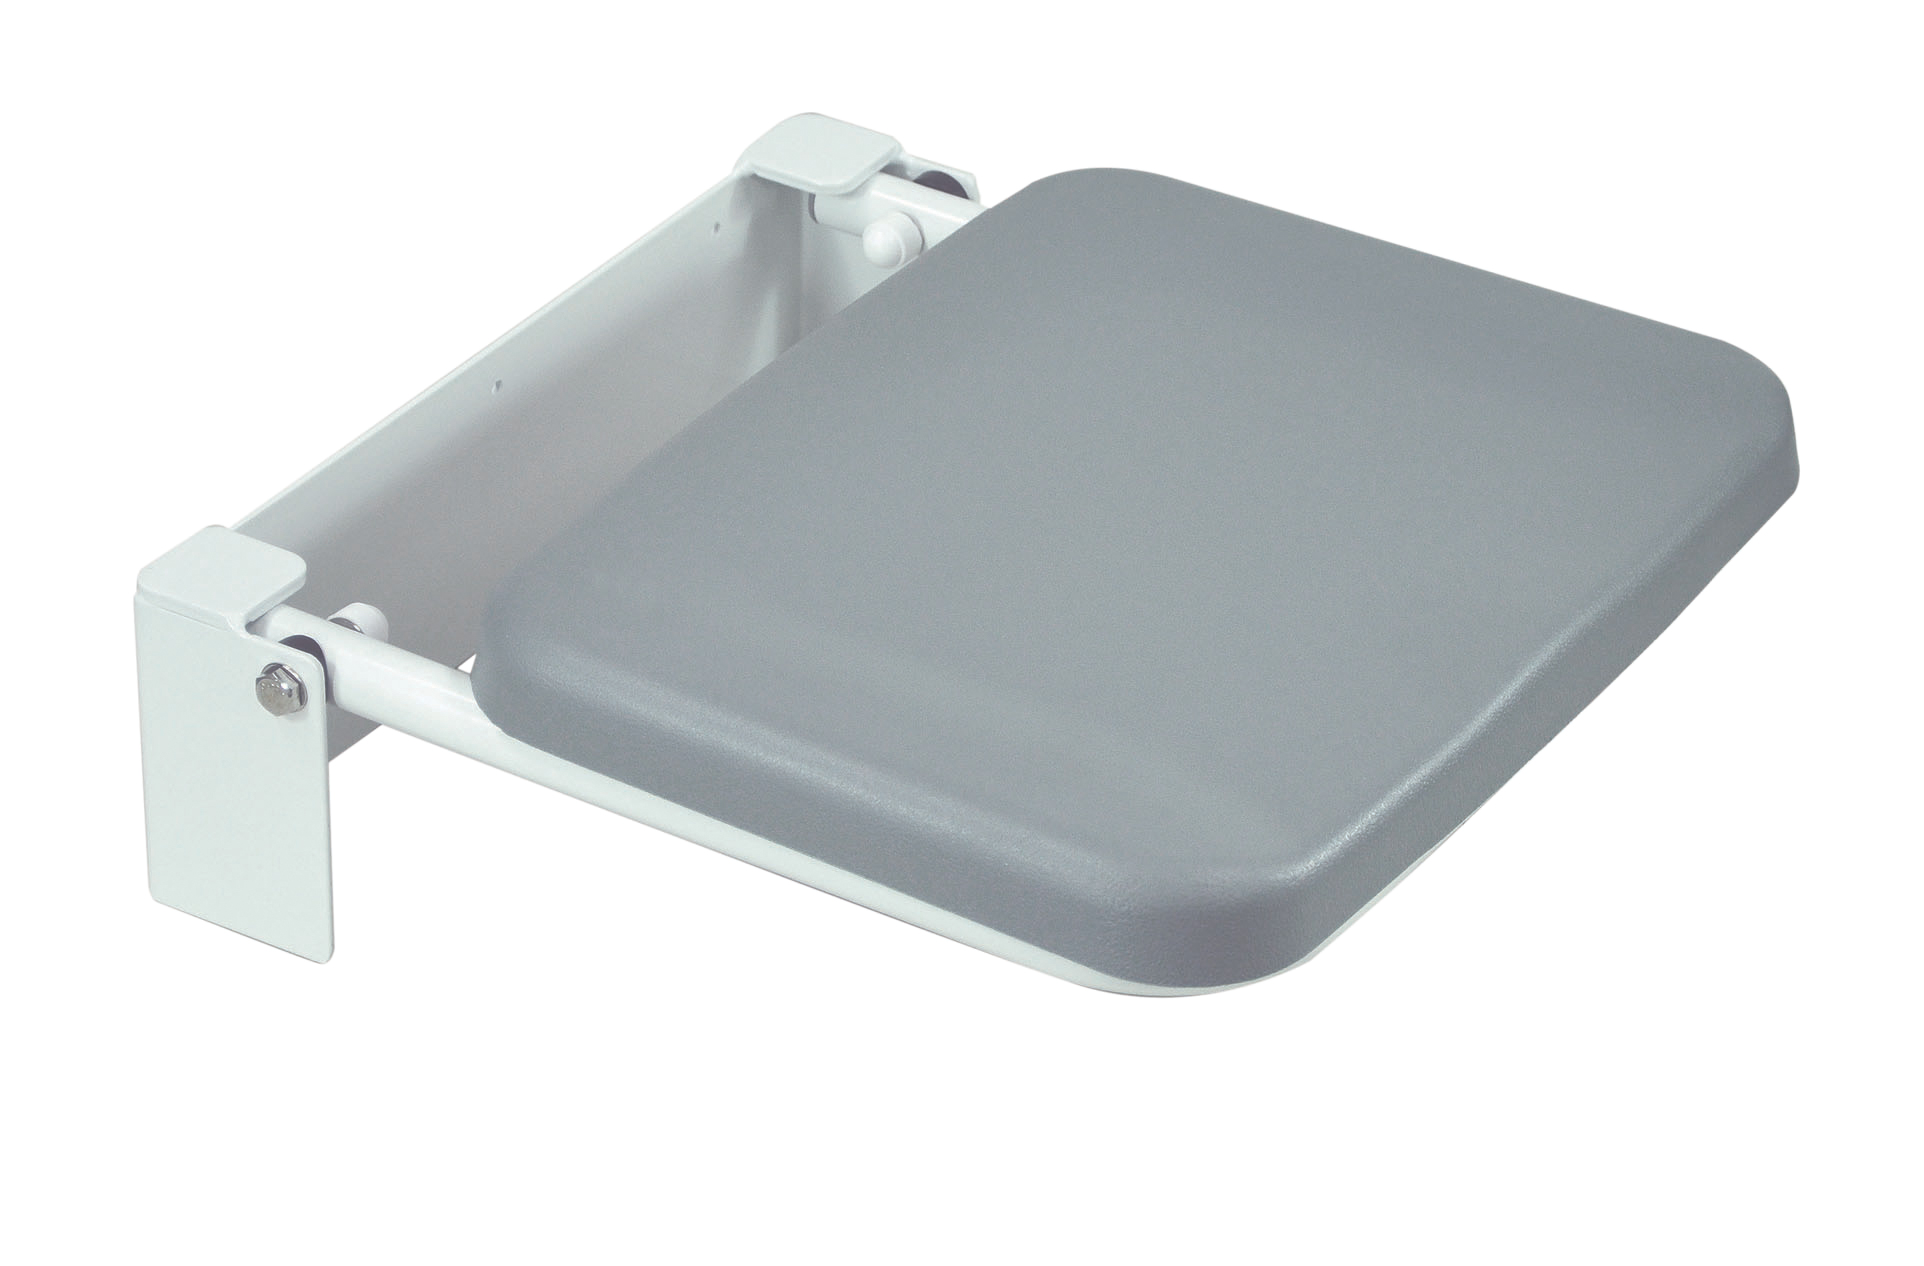 Solo Compact Padded Shower Seat - Living made easy